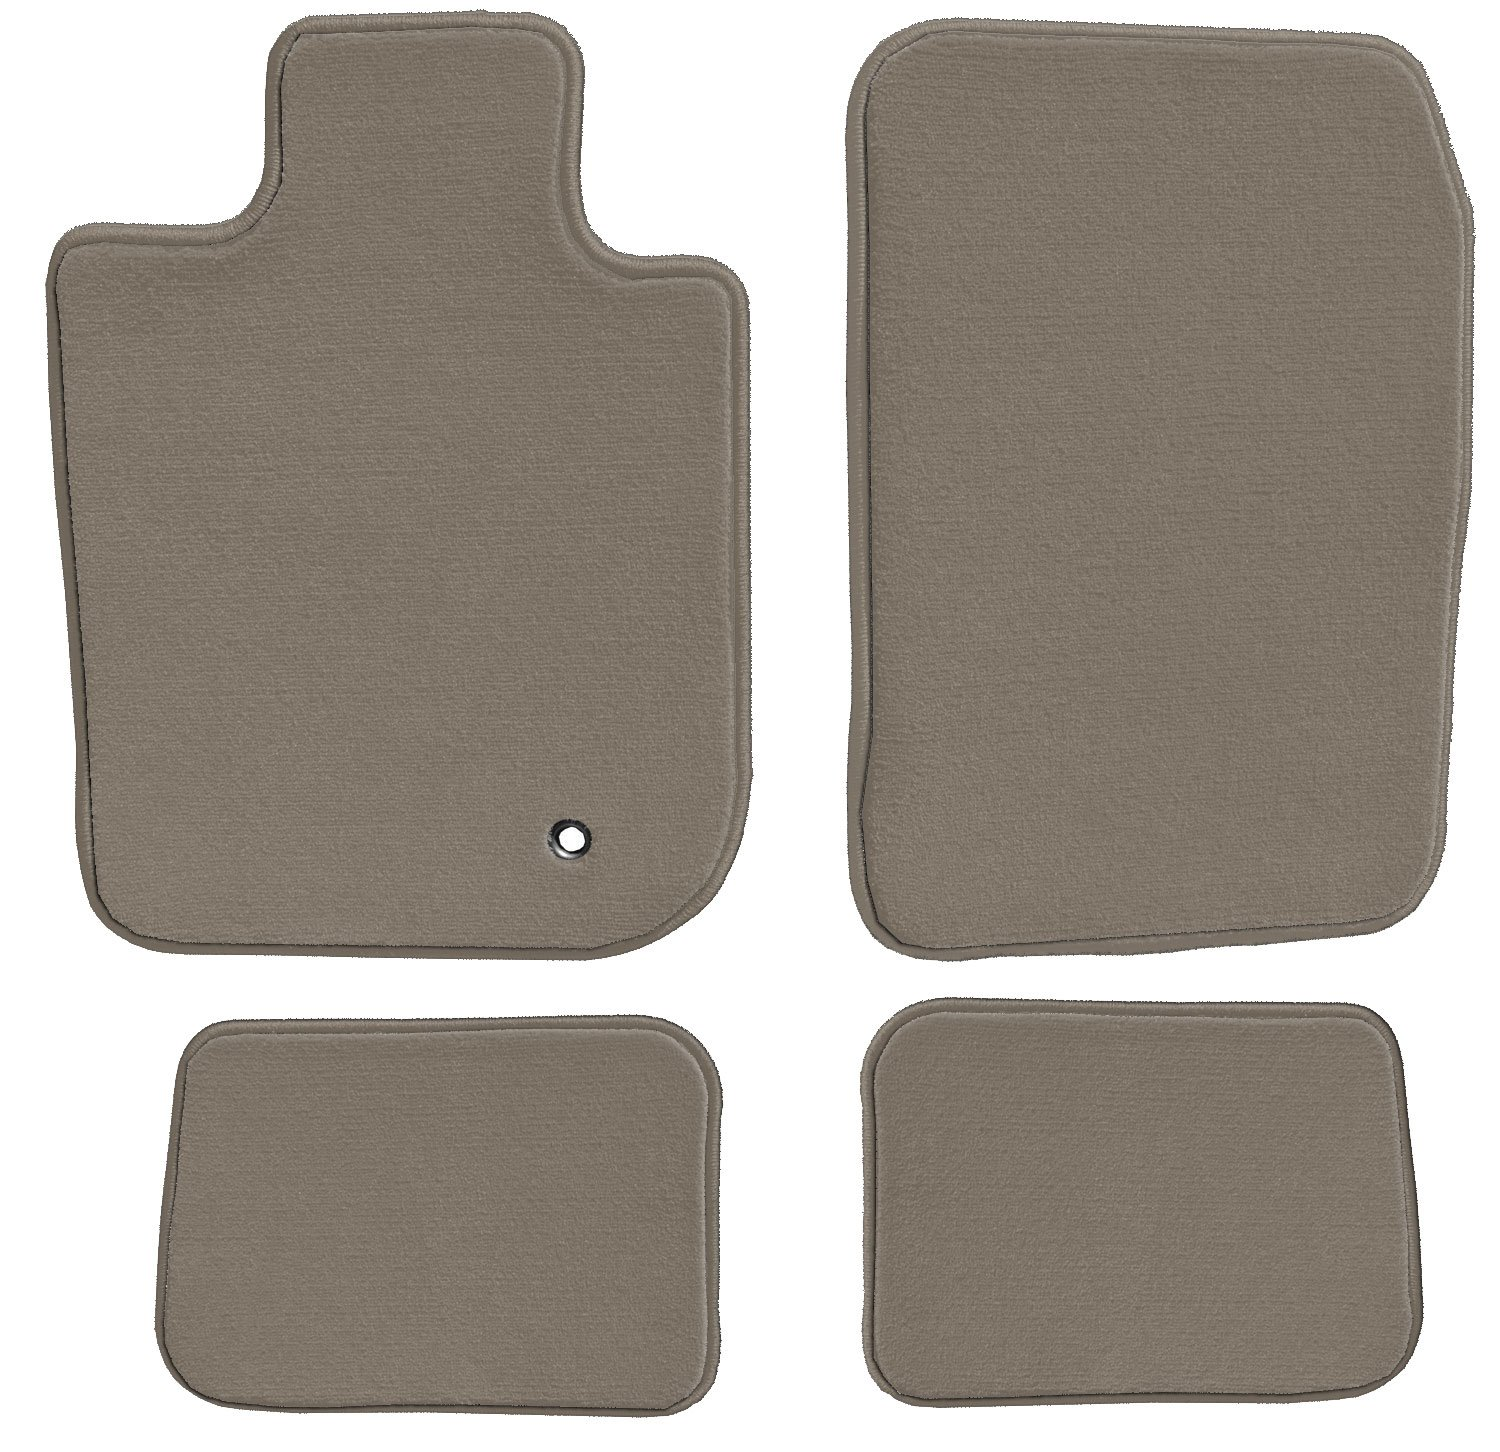 2000 2001 2002 Lincoln Navigator Beige Loop Driver Passenger /& Rear GGBAILEY D4724A-S2A-BG-LP Custom Fit Automotive Carpet Floor Mats for 1998 1999